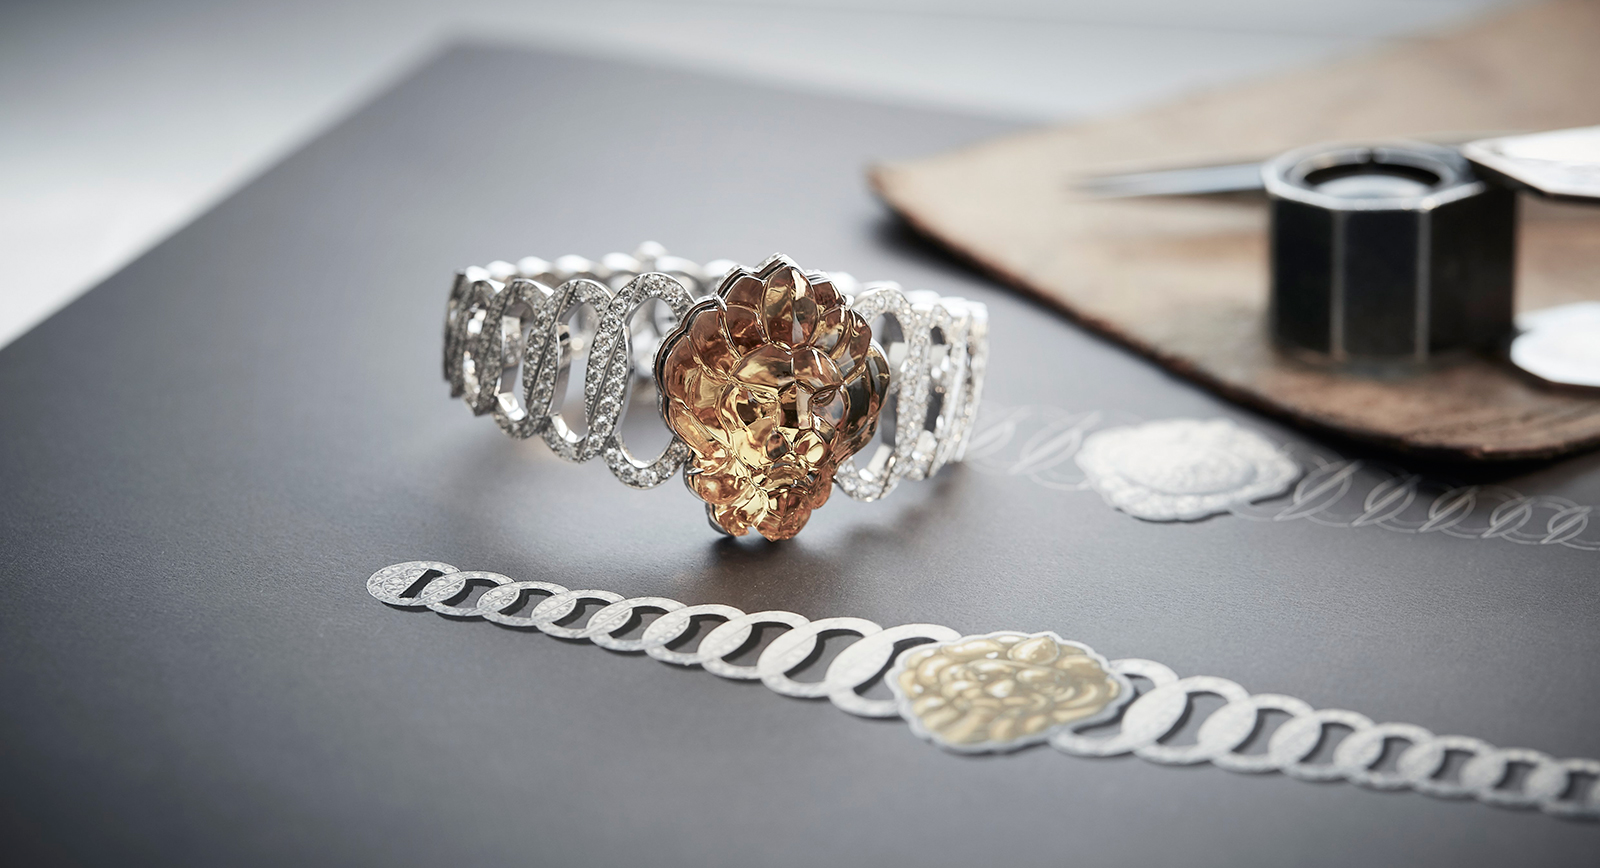 Folio.YVR #8/9: Chanel L'Esprit du Lion High Jewellery